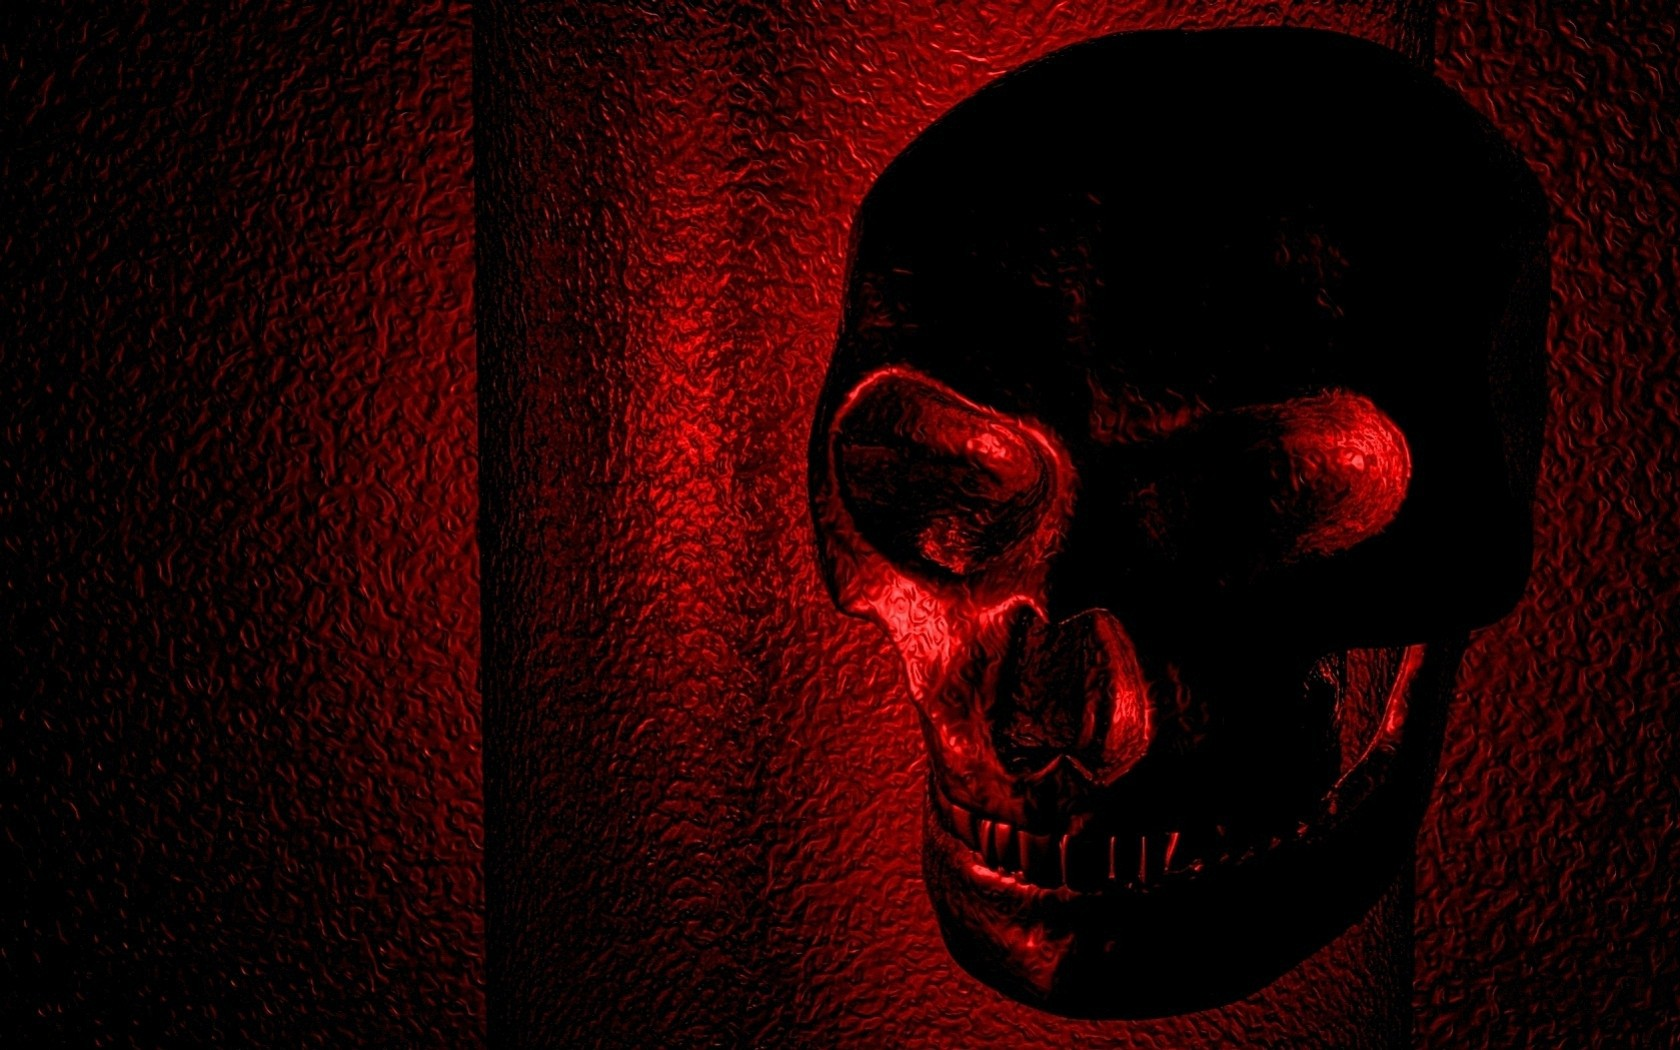 Red Skull Wallpaper Red skull wallpapers and 1680x1050